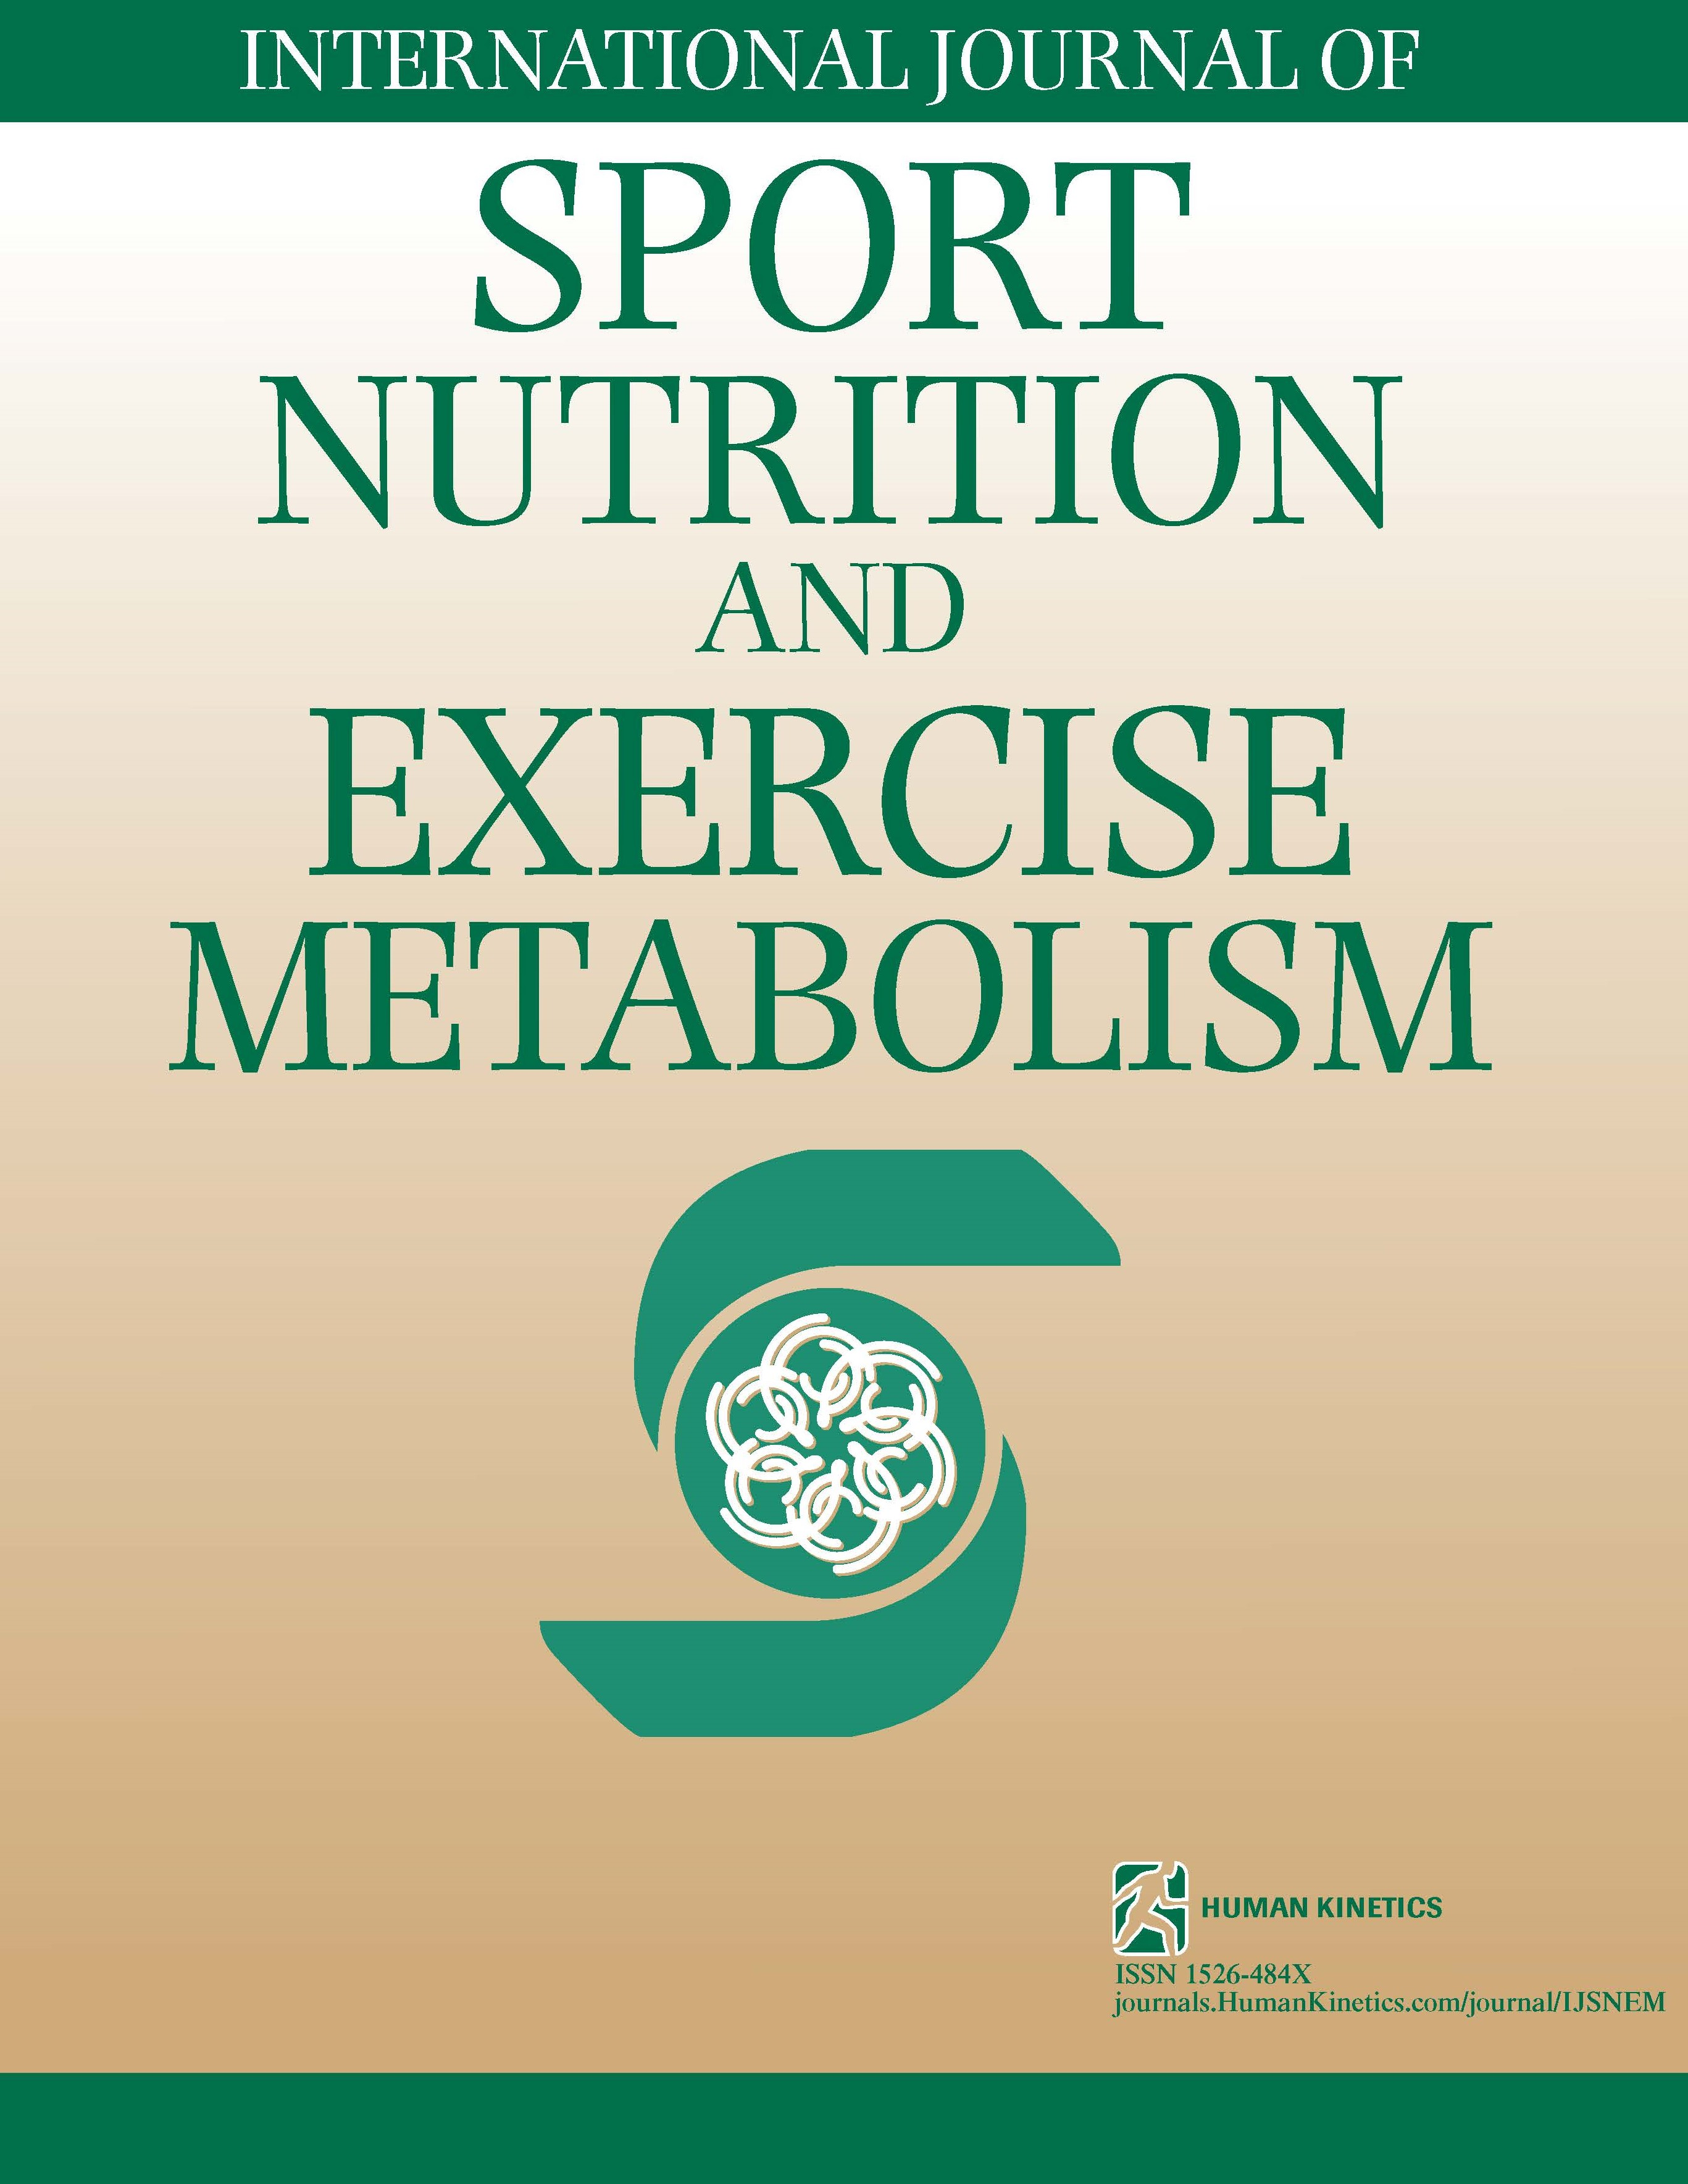 International Journal of Sport Nutrition and Exercise Metabolism